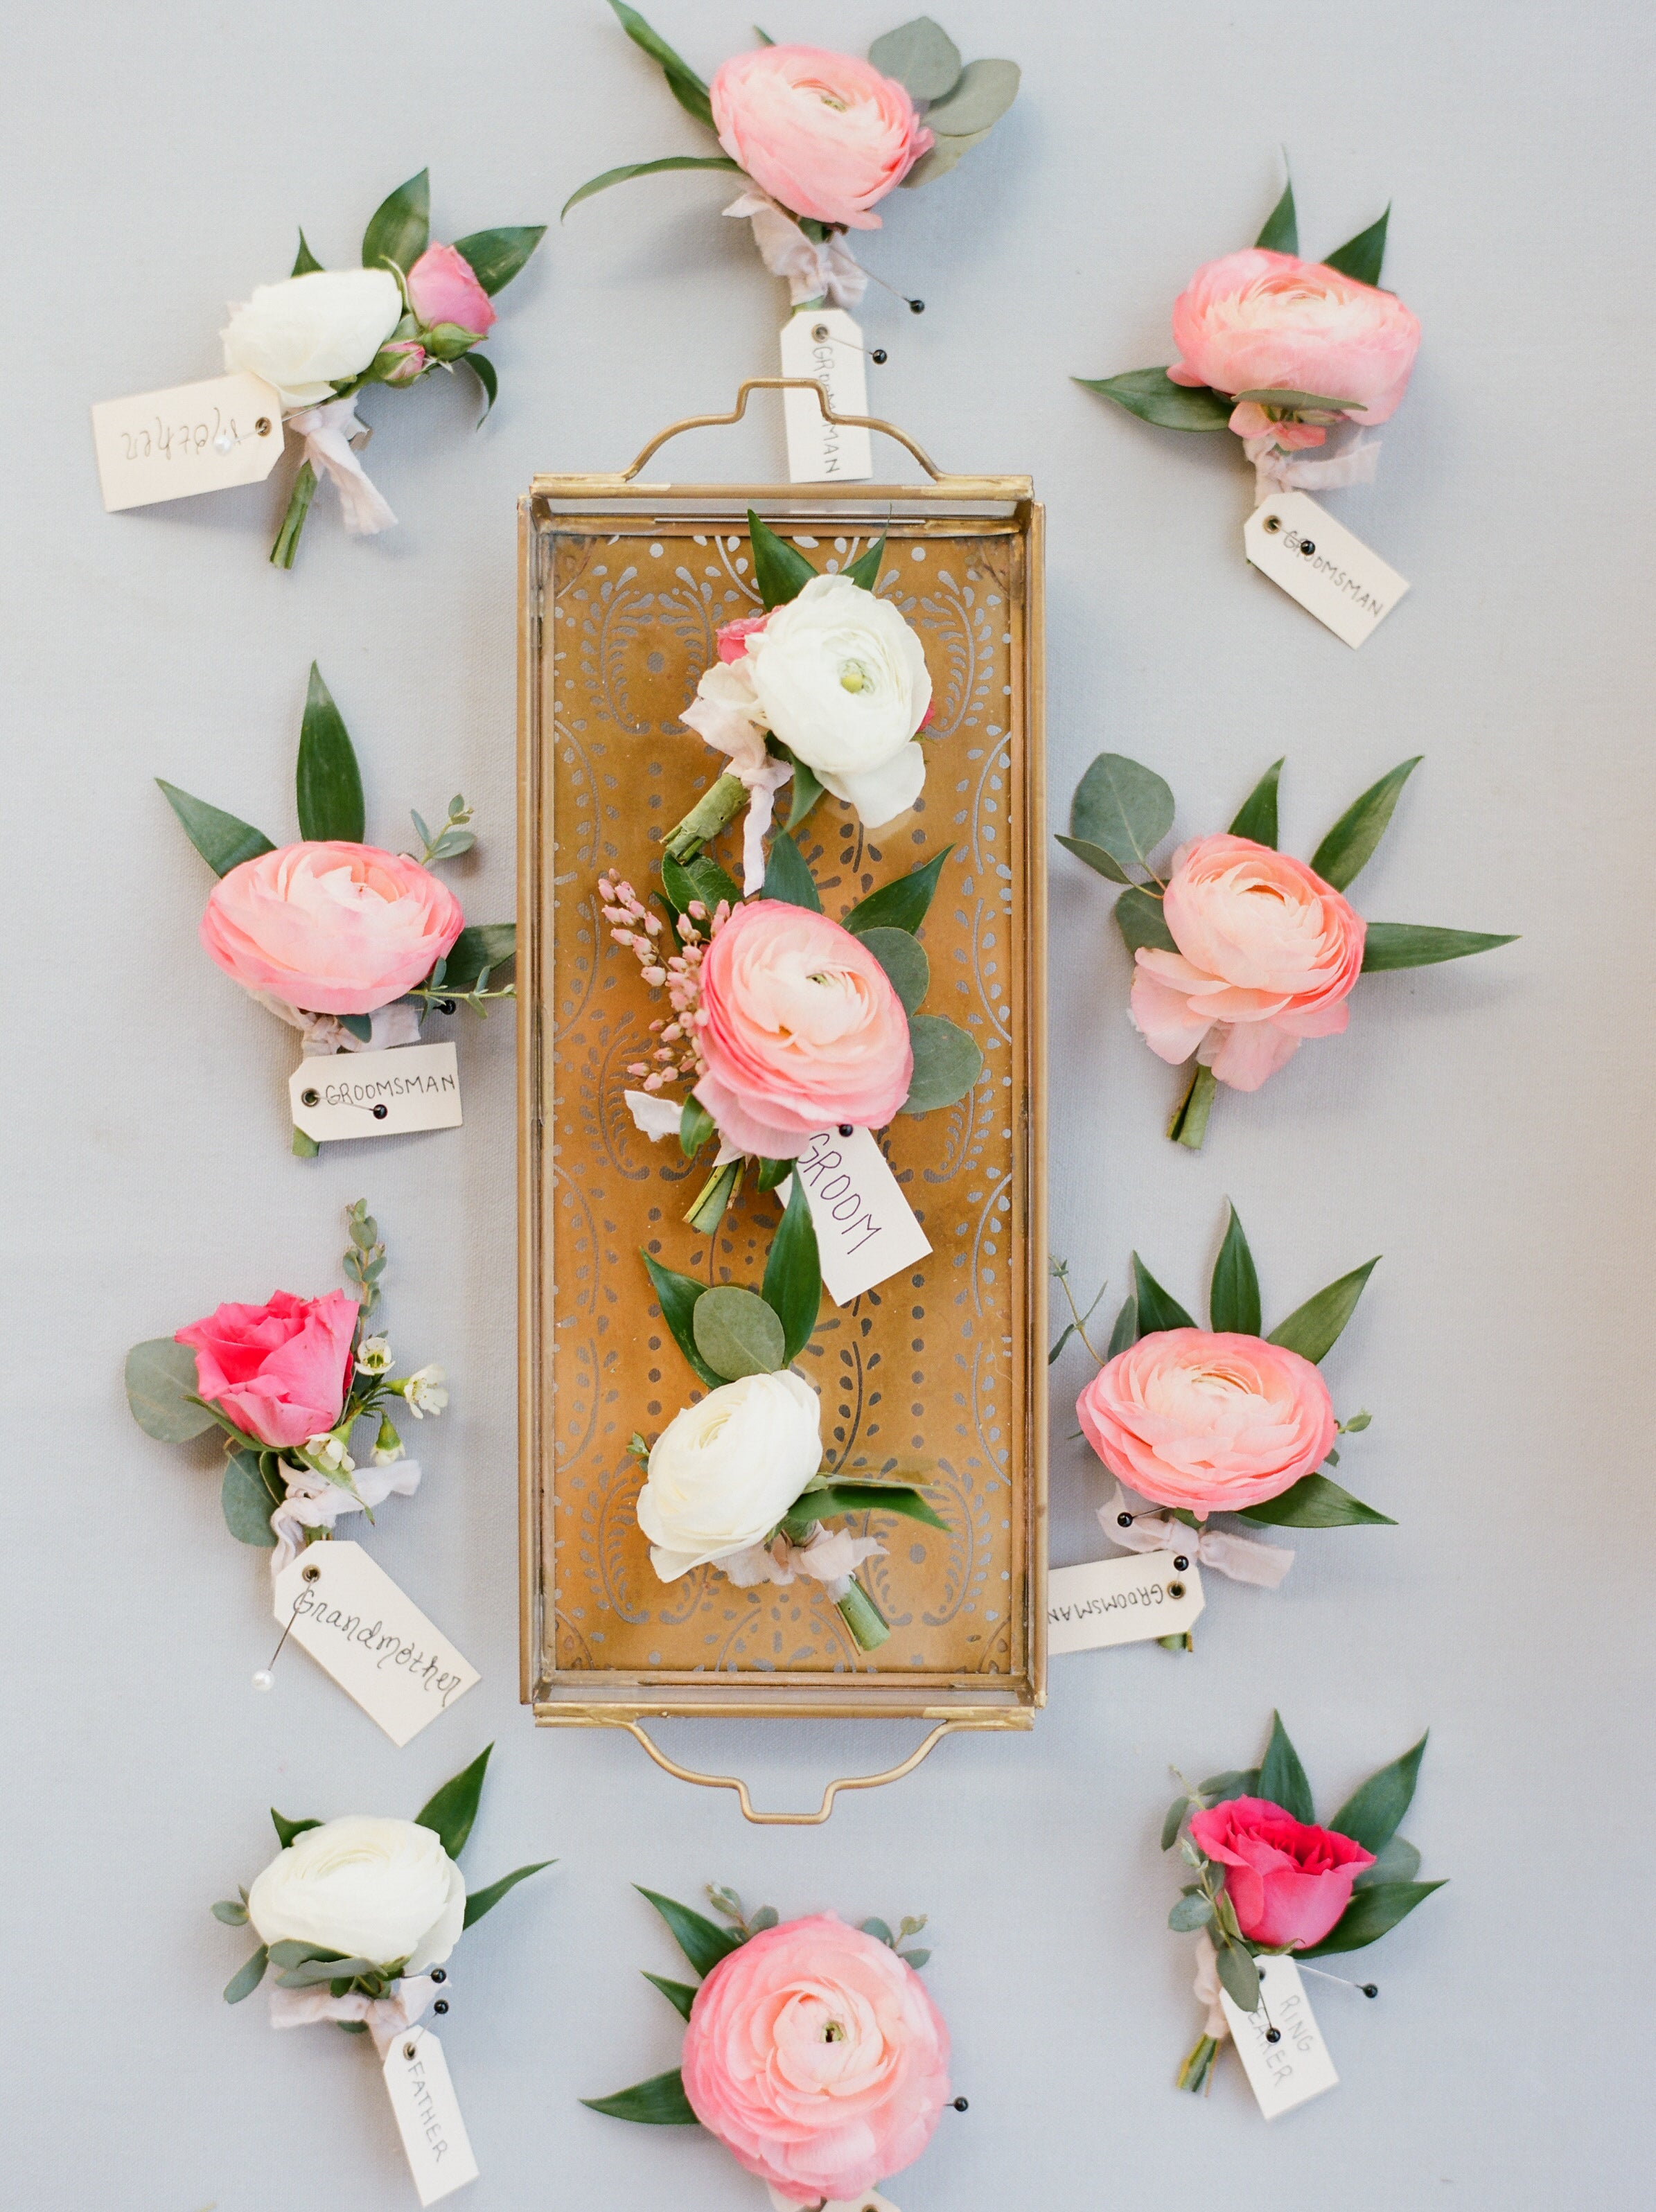 Blush floral decor